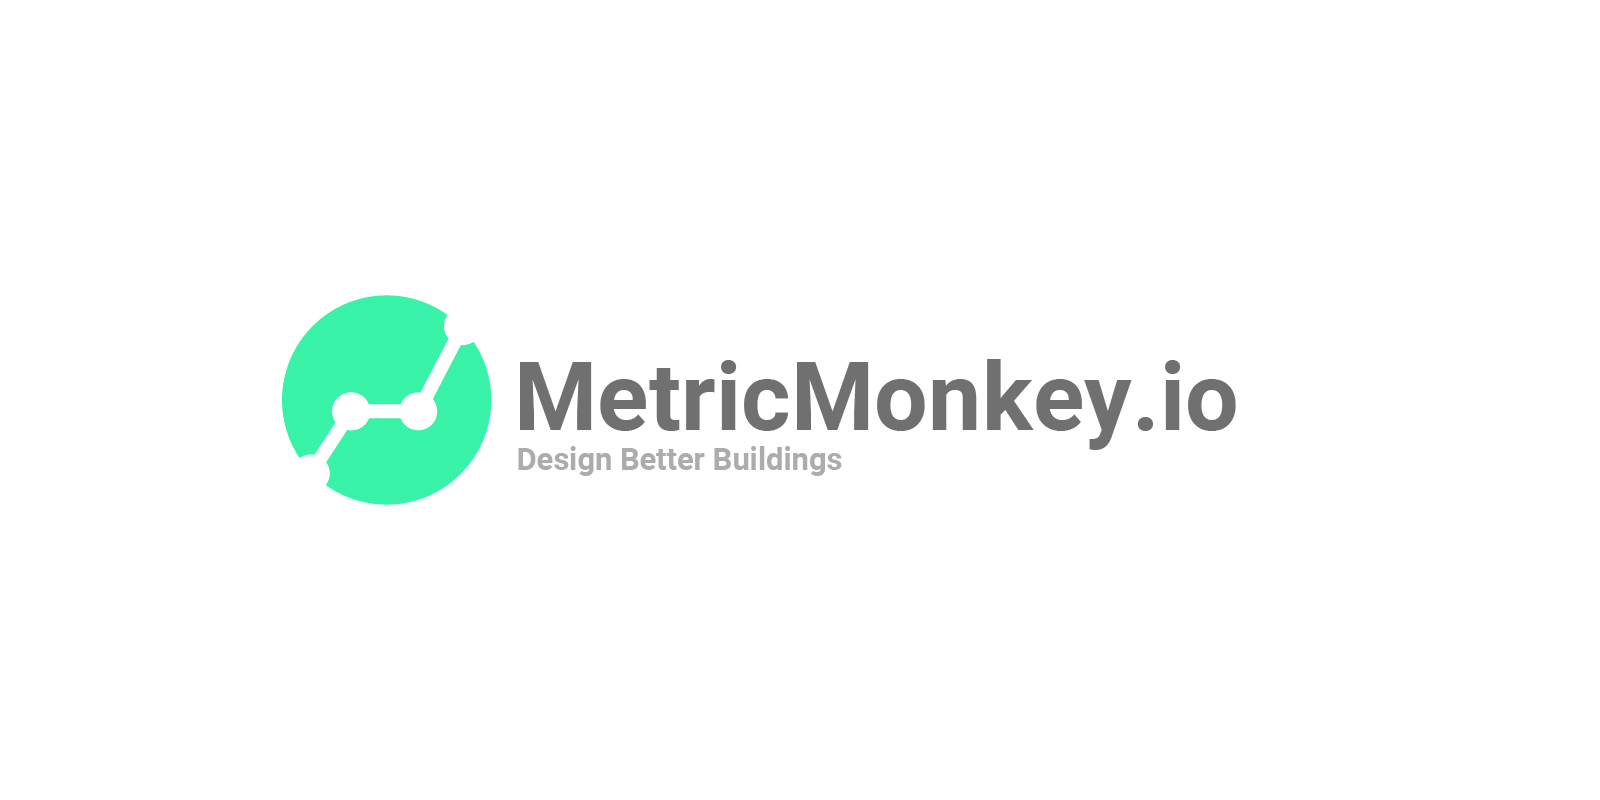 MetricMonkey.io launches